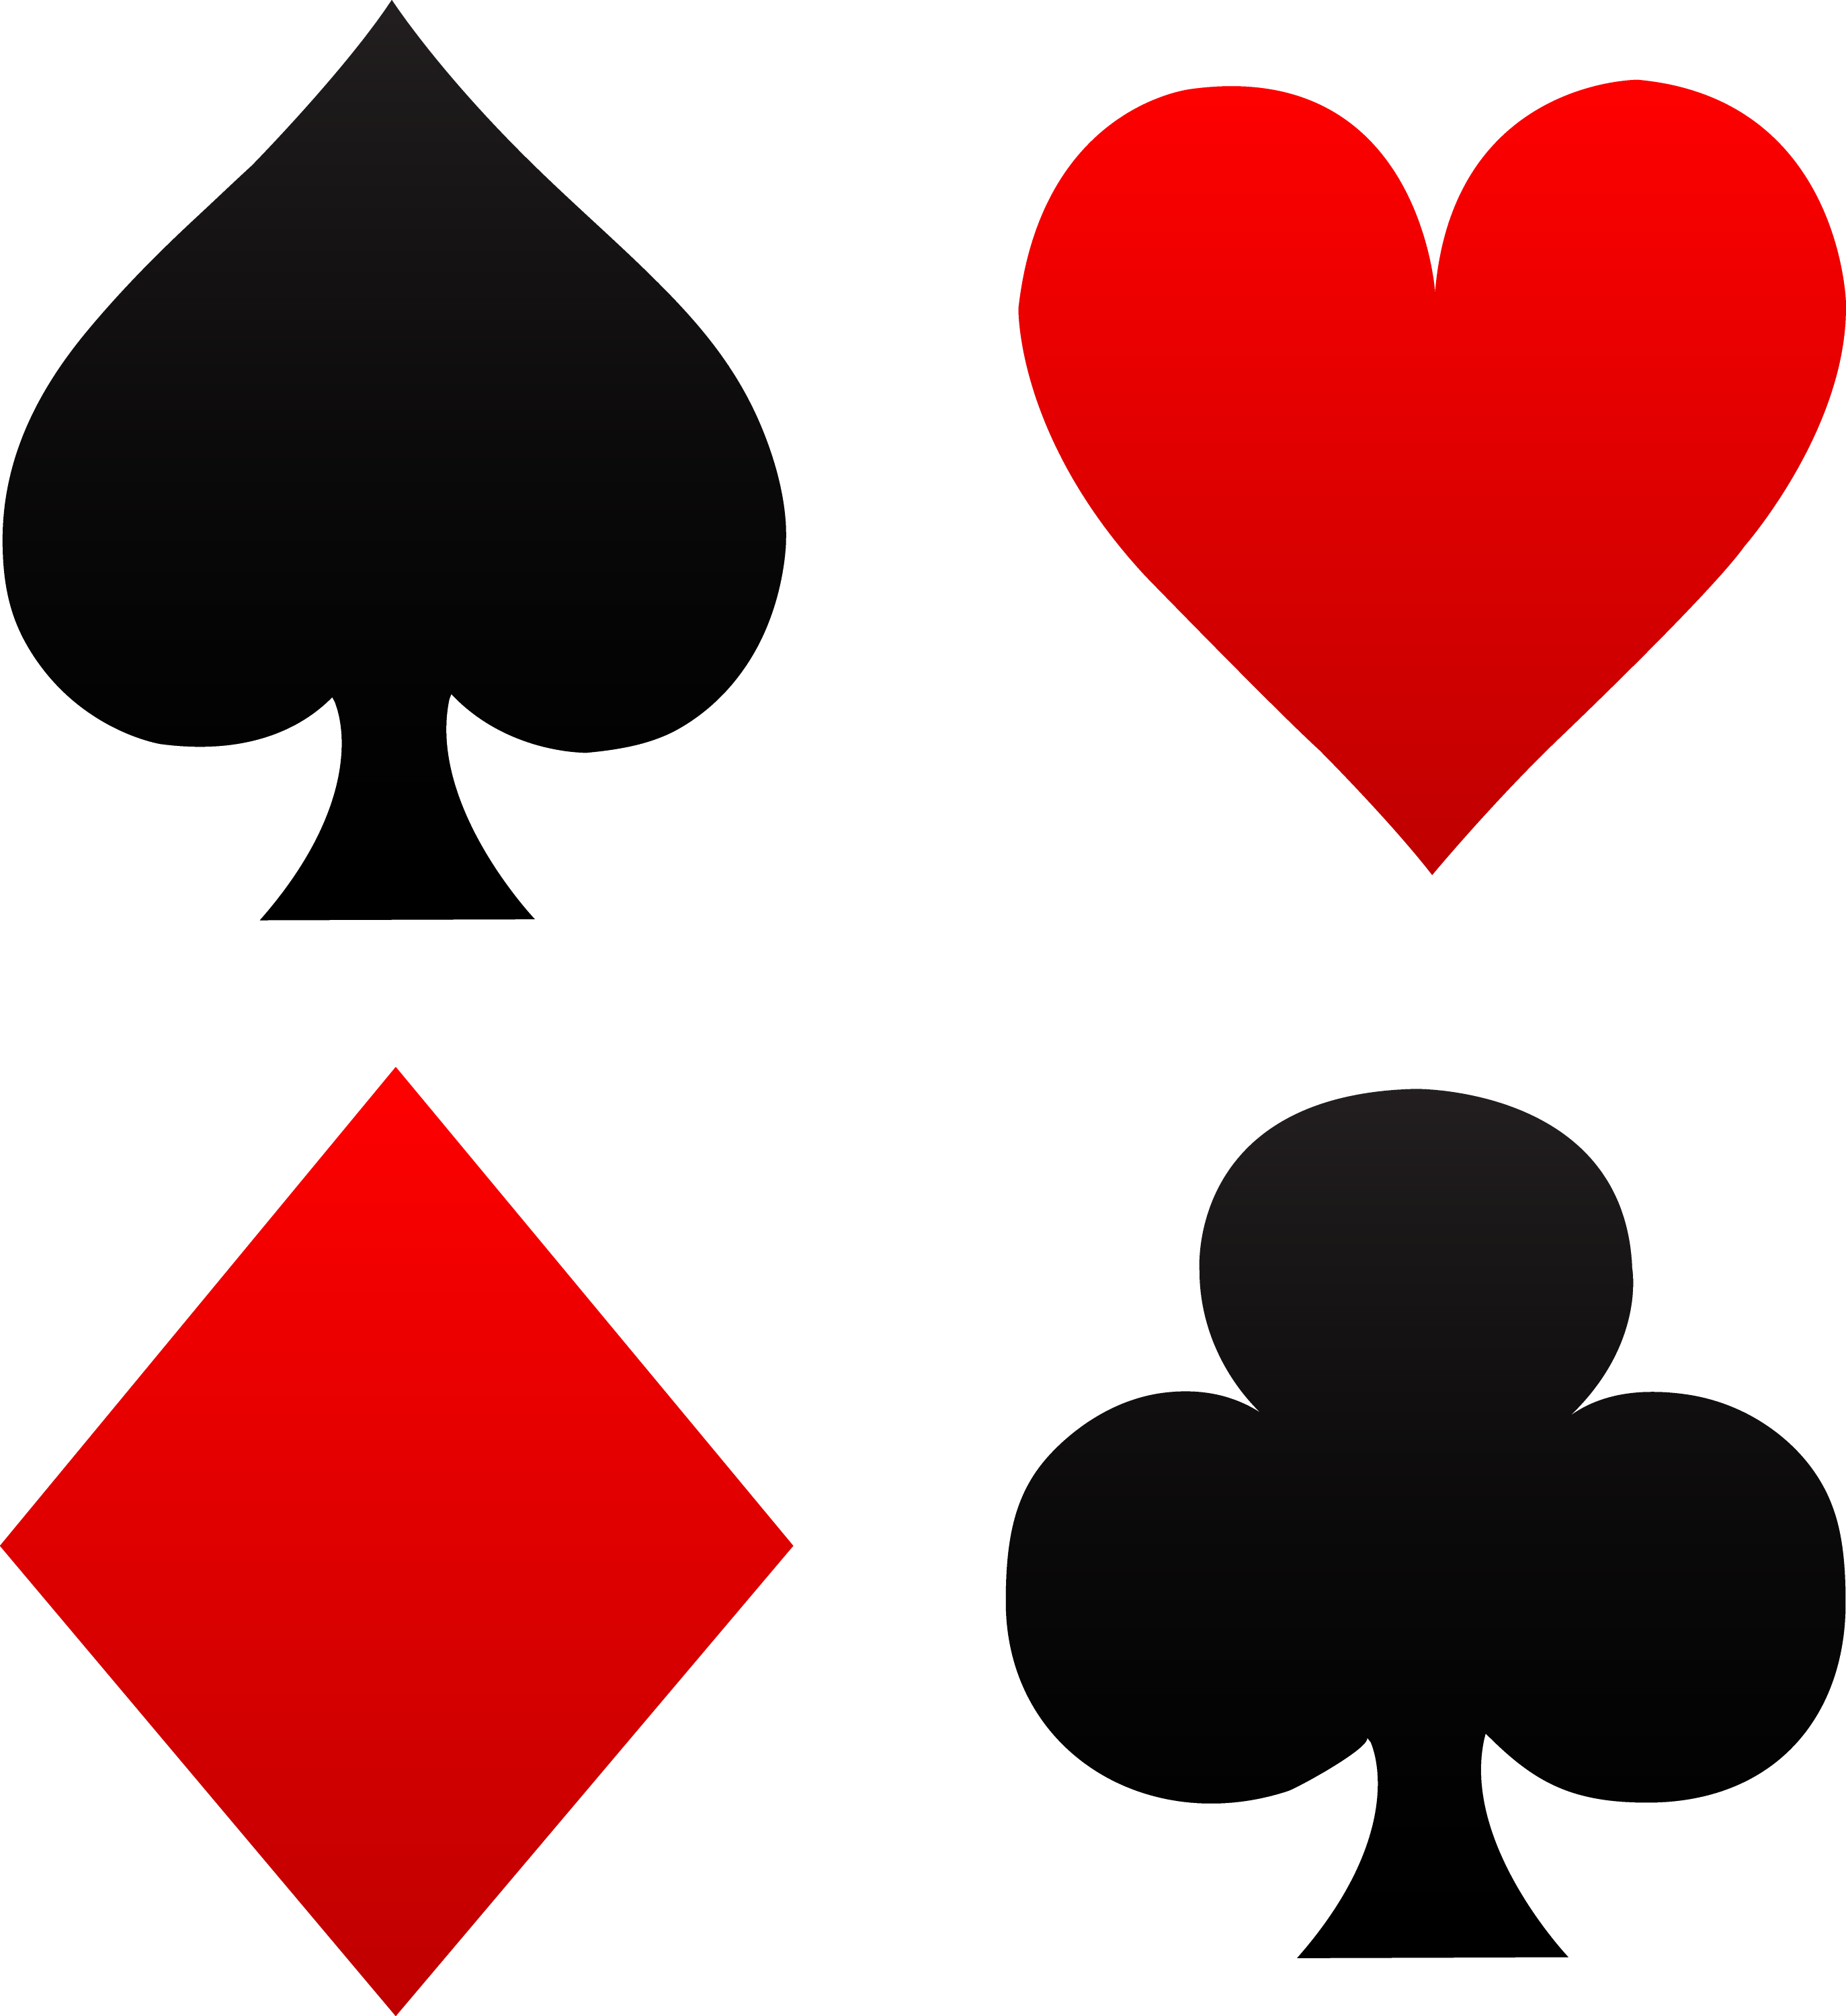 diamond club stock photo heart black on difference card background red and poker